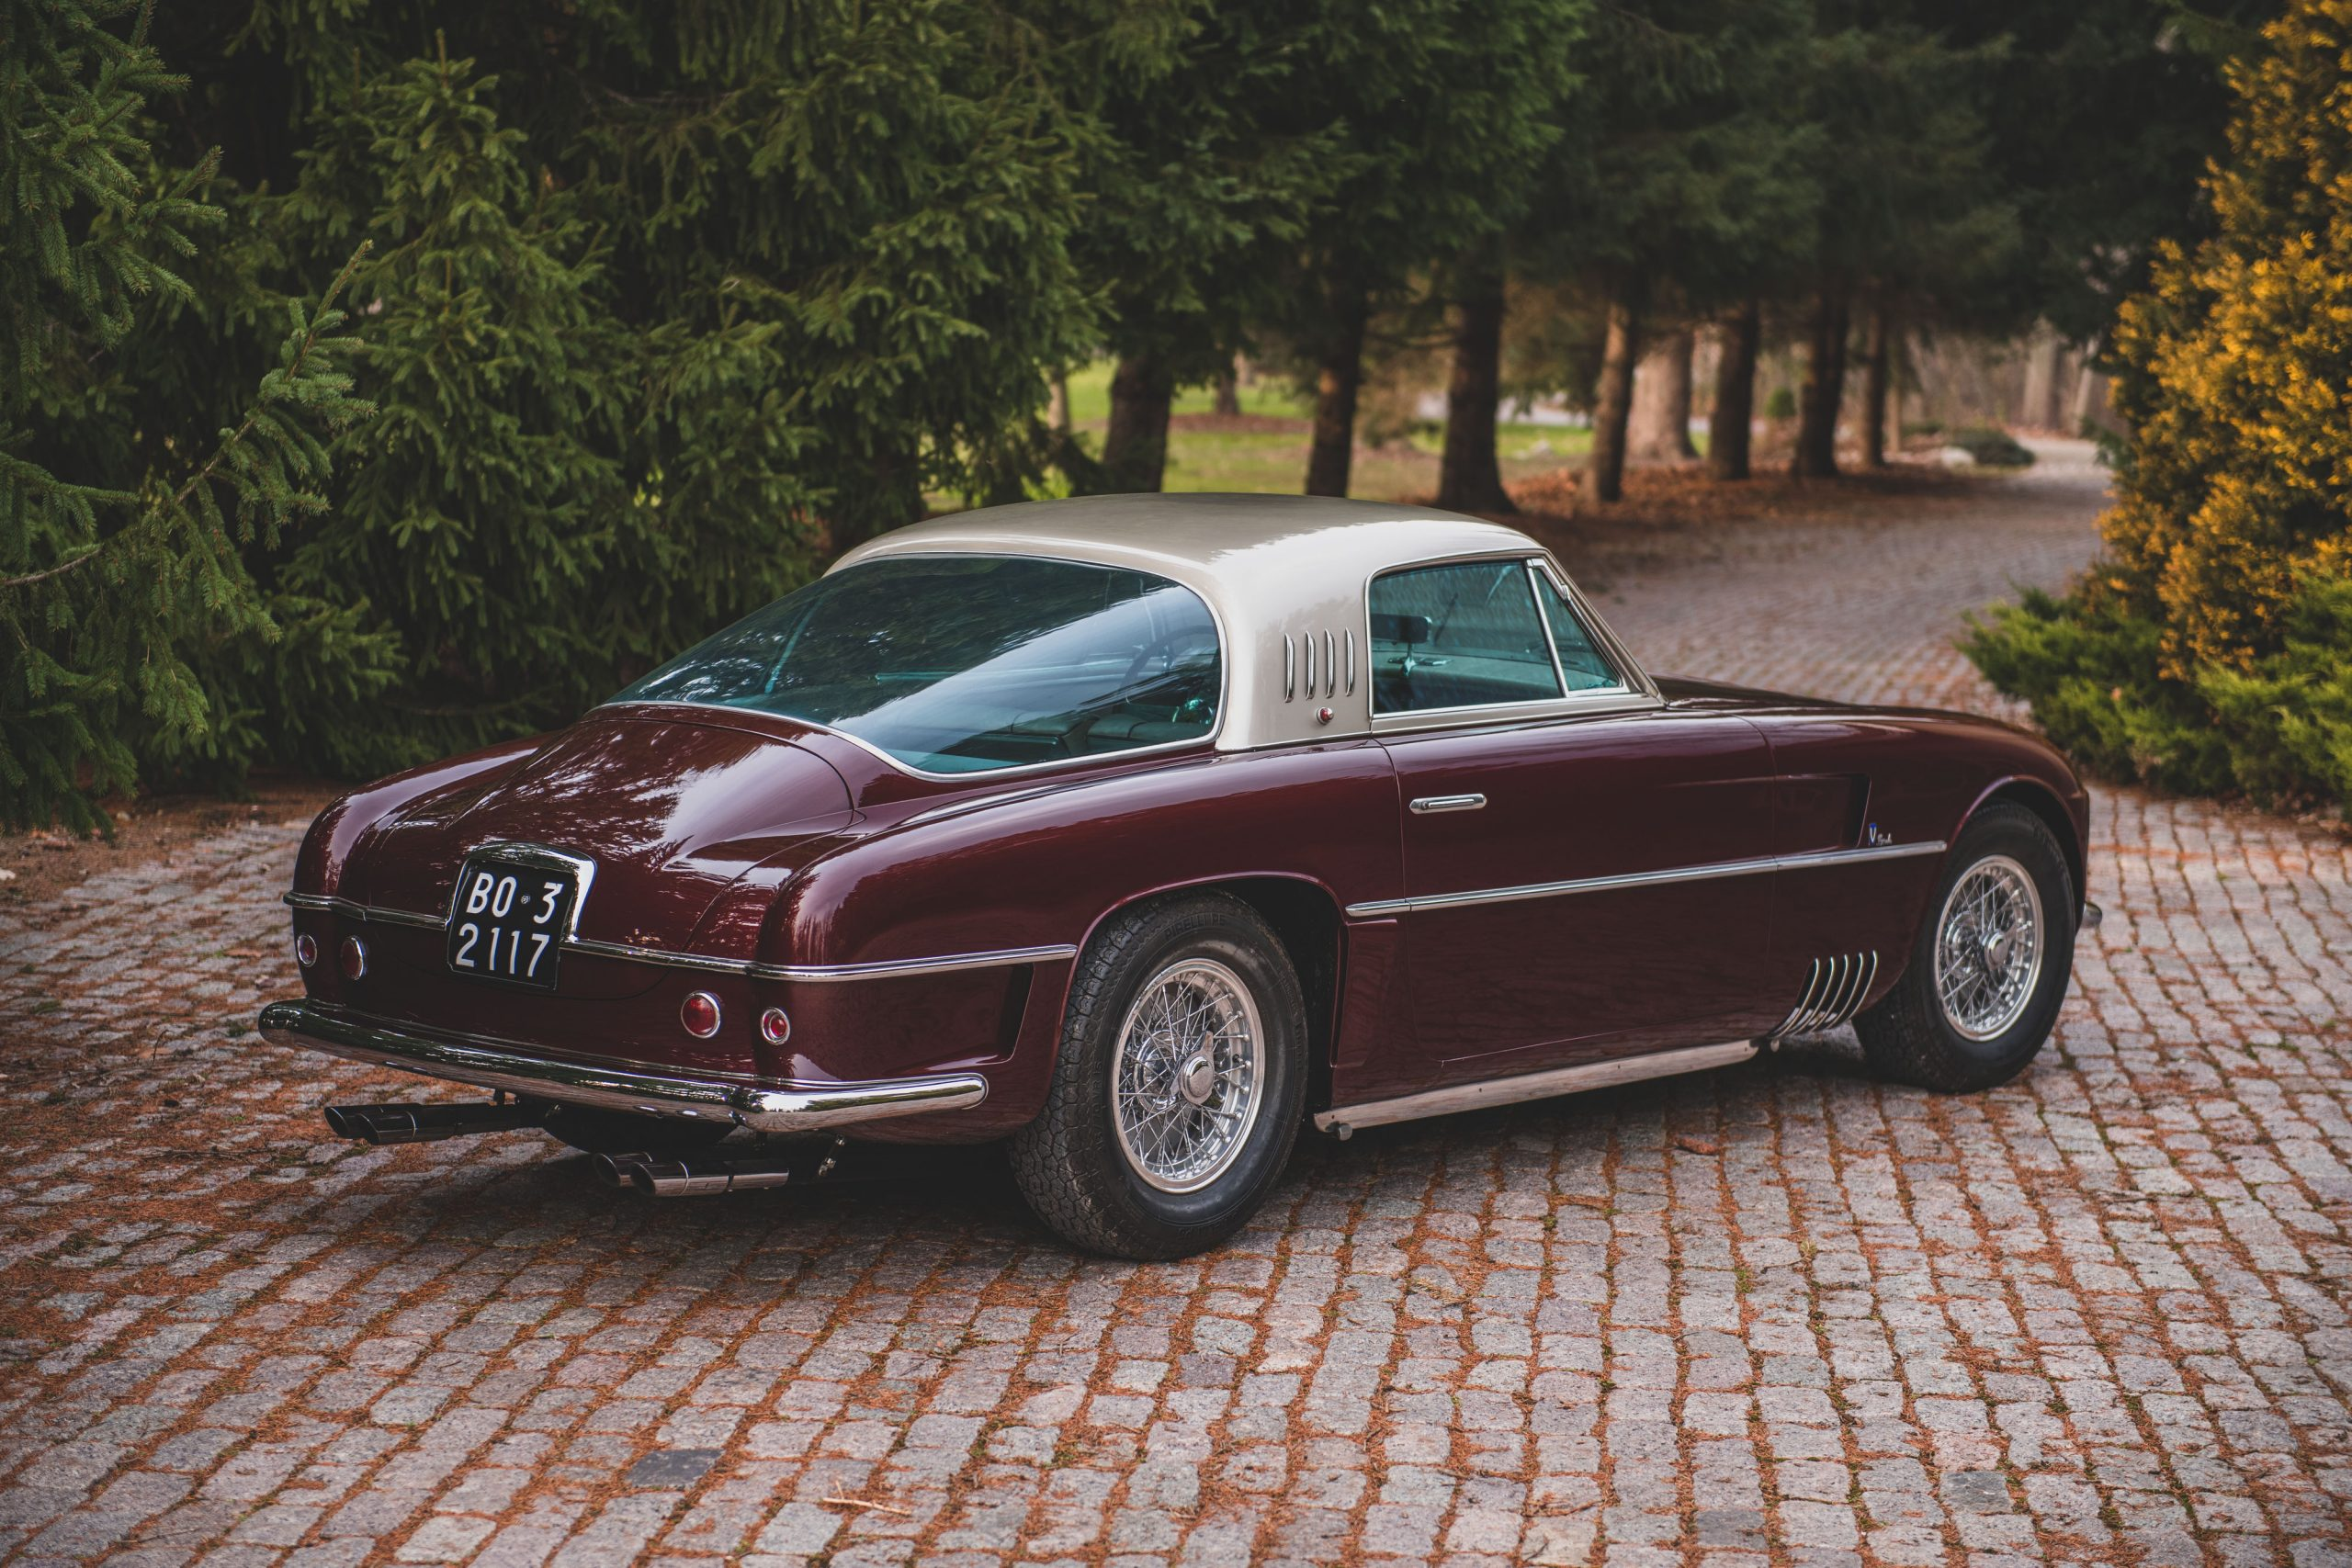 Ferrari 375 America Coupe Vignale rear three-quarter